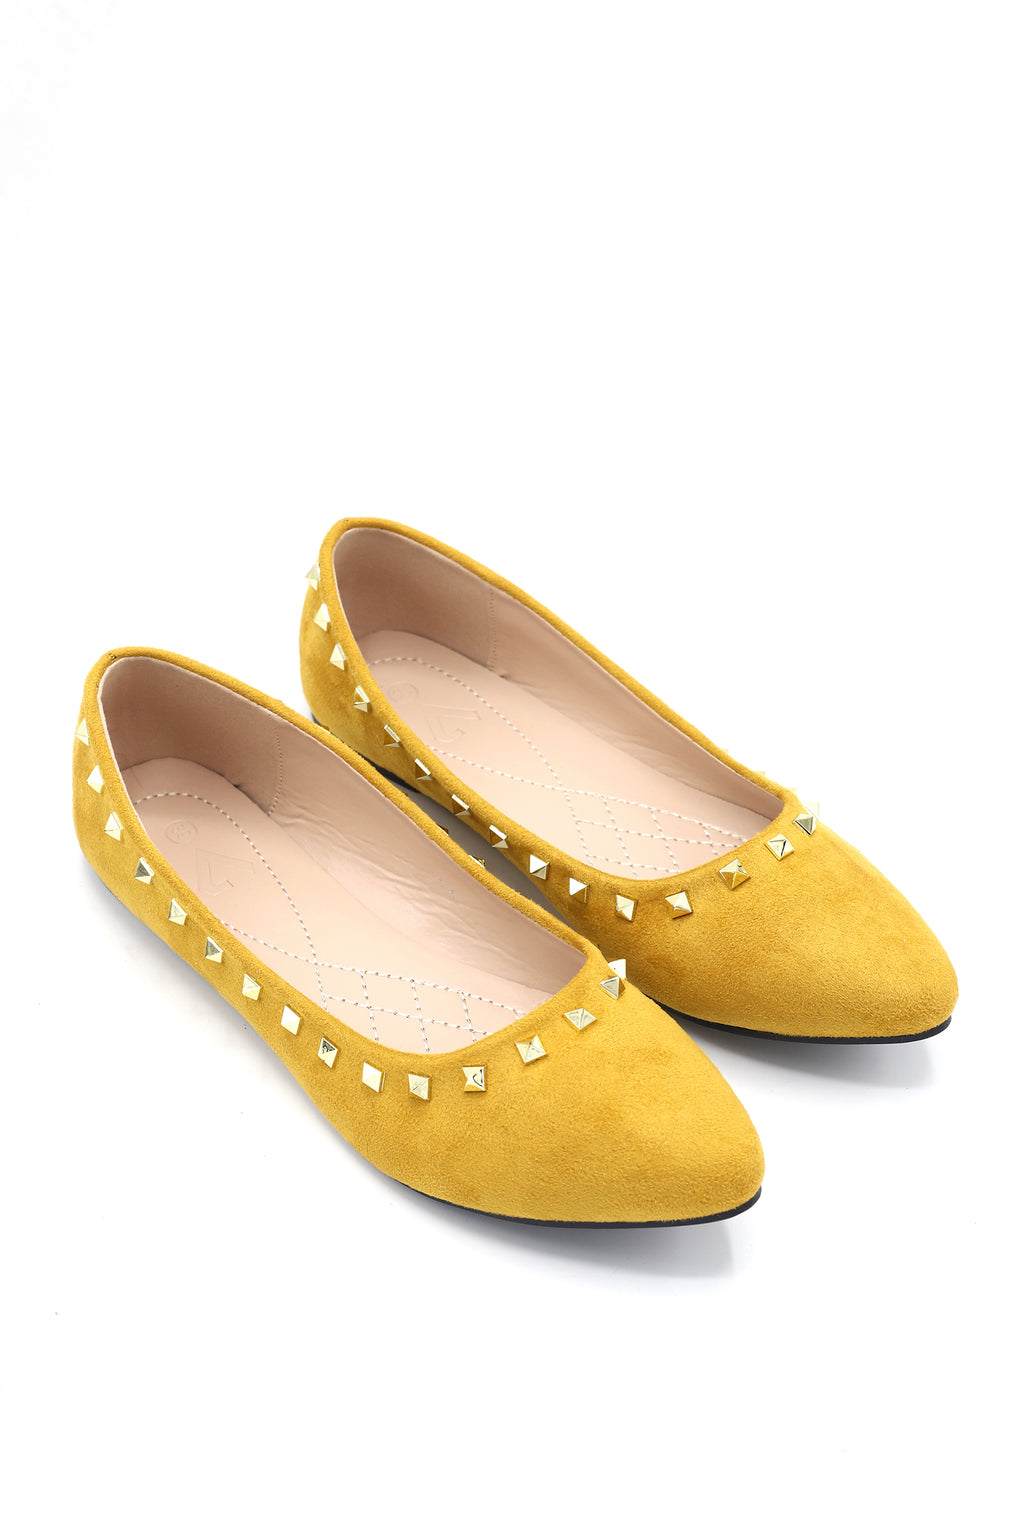 STUDDED PUMPS -YELLOW